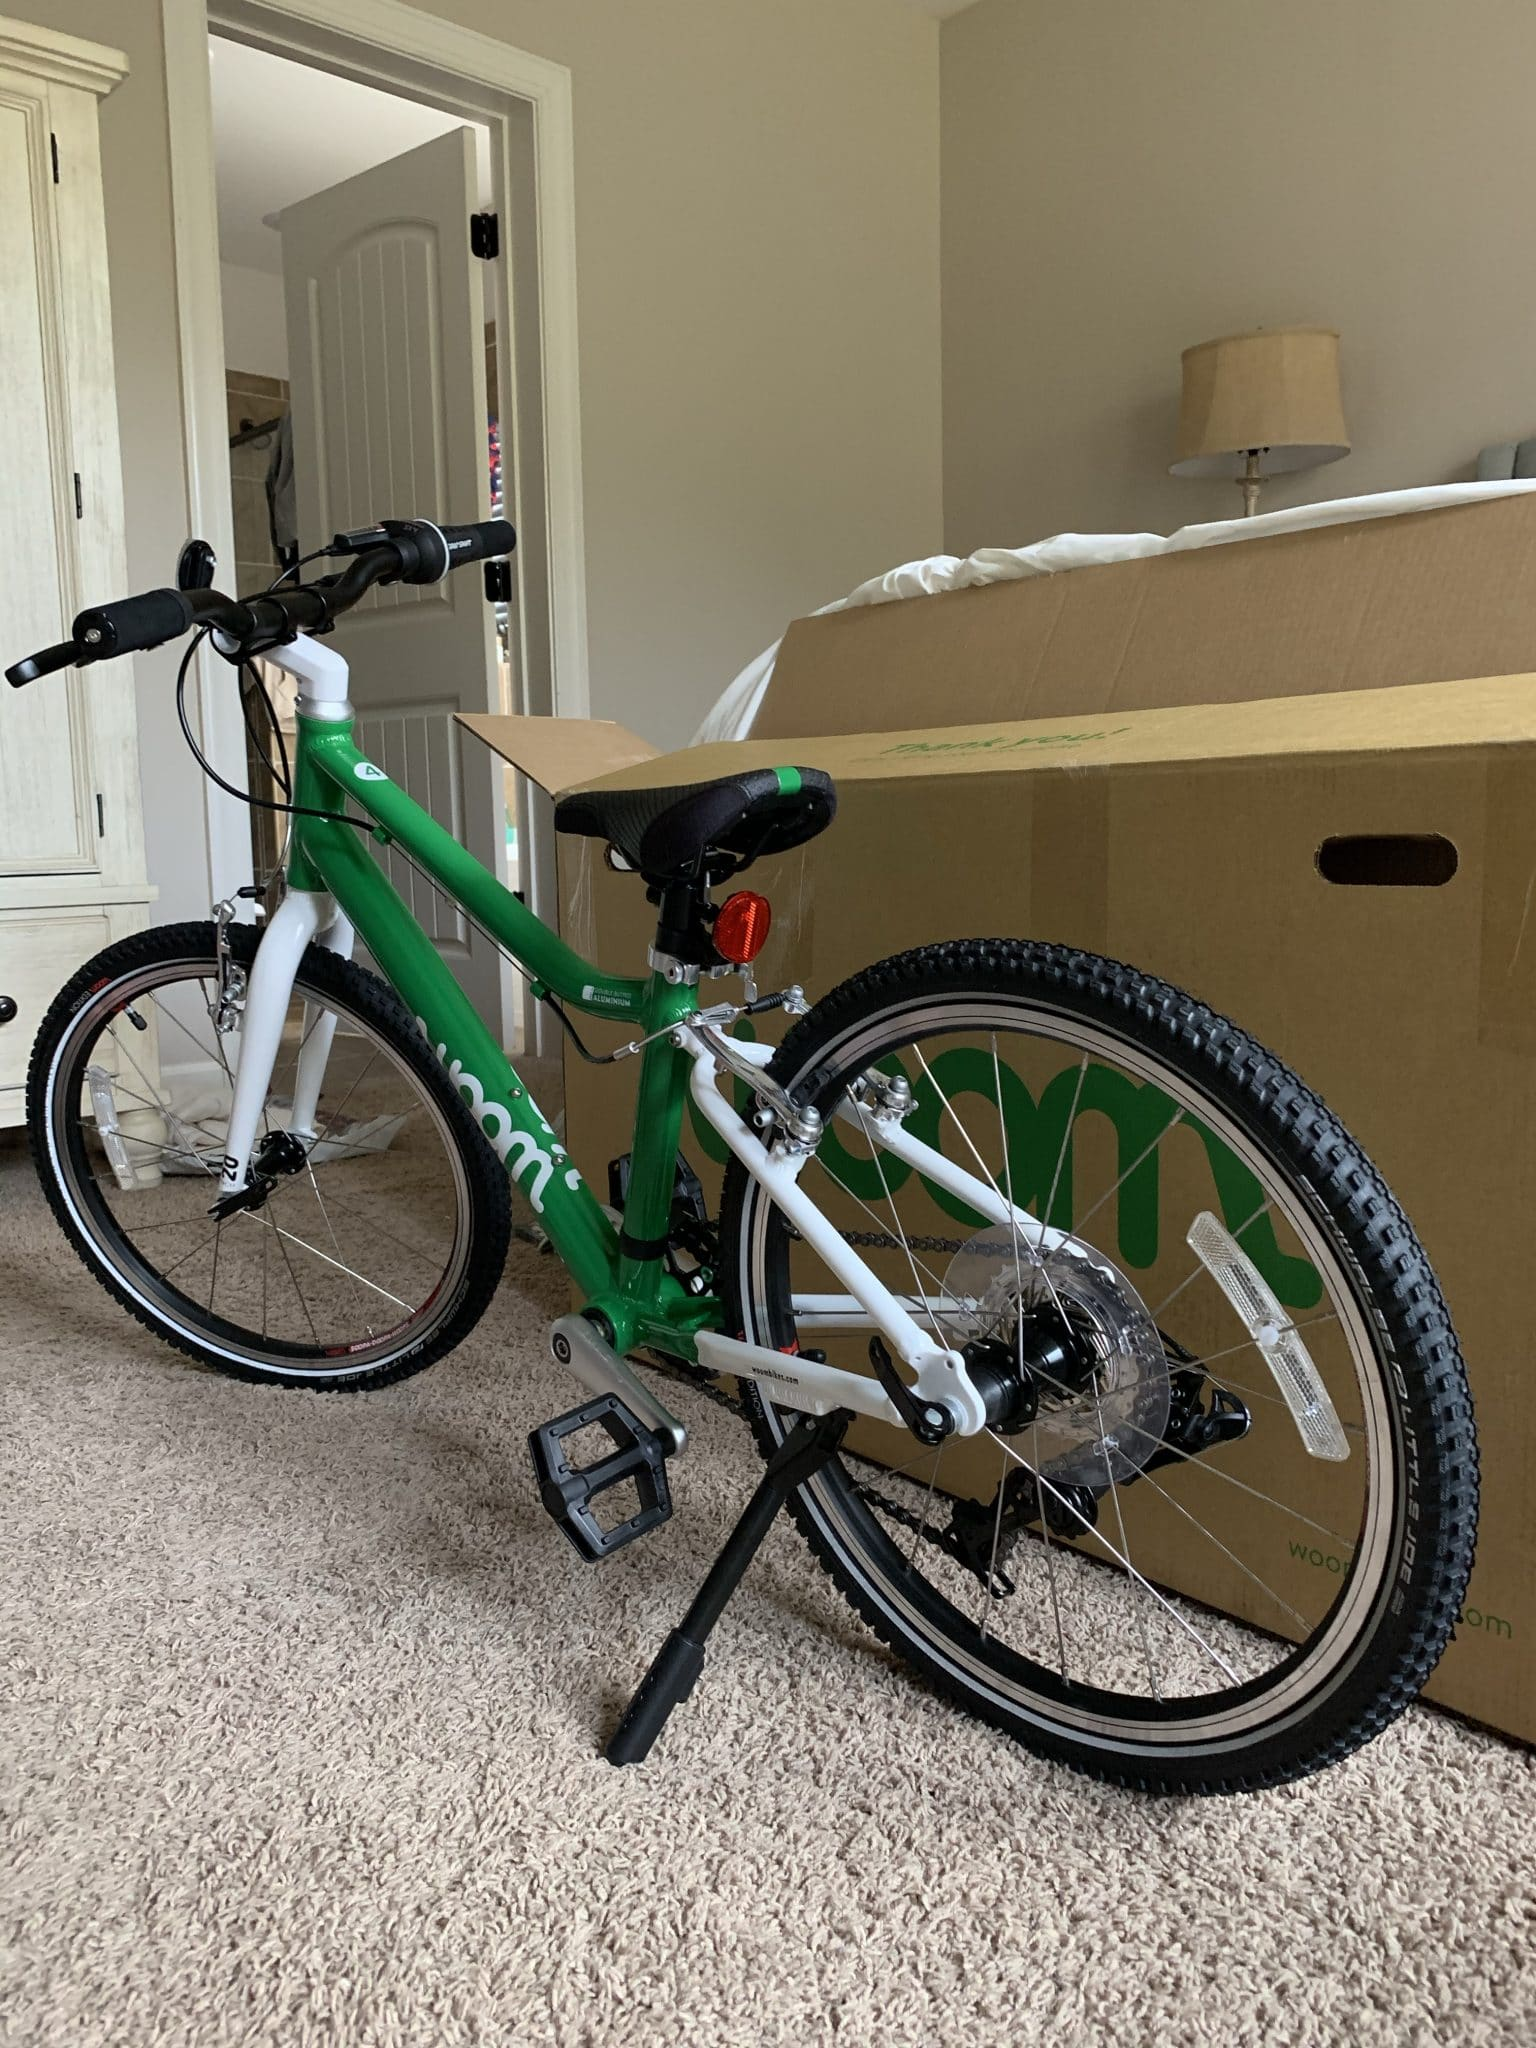 woom bikes easy assembly, woom bikes review, stilettos and diapers